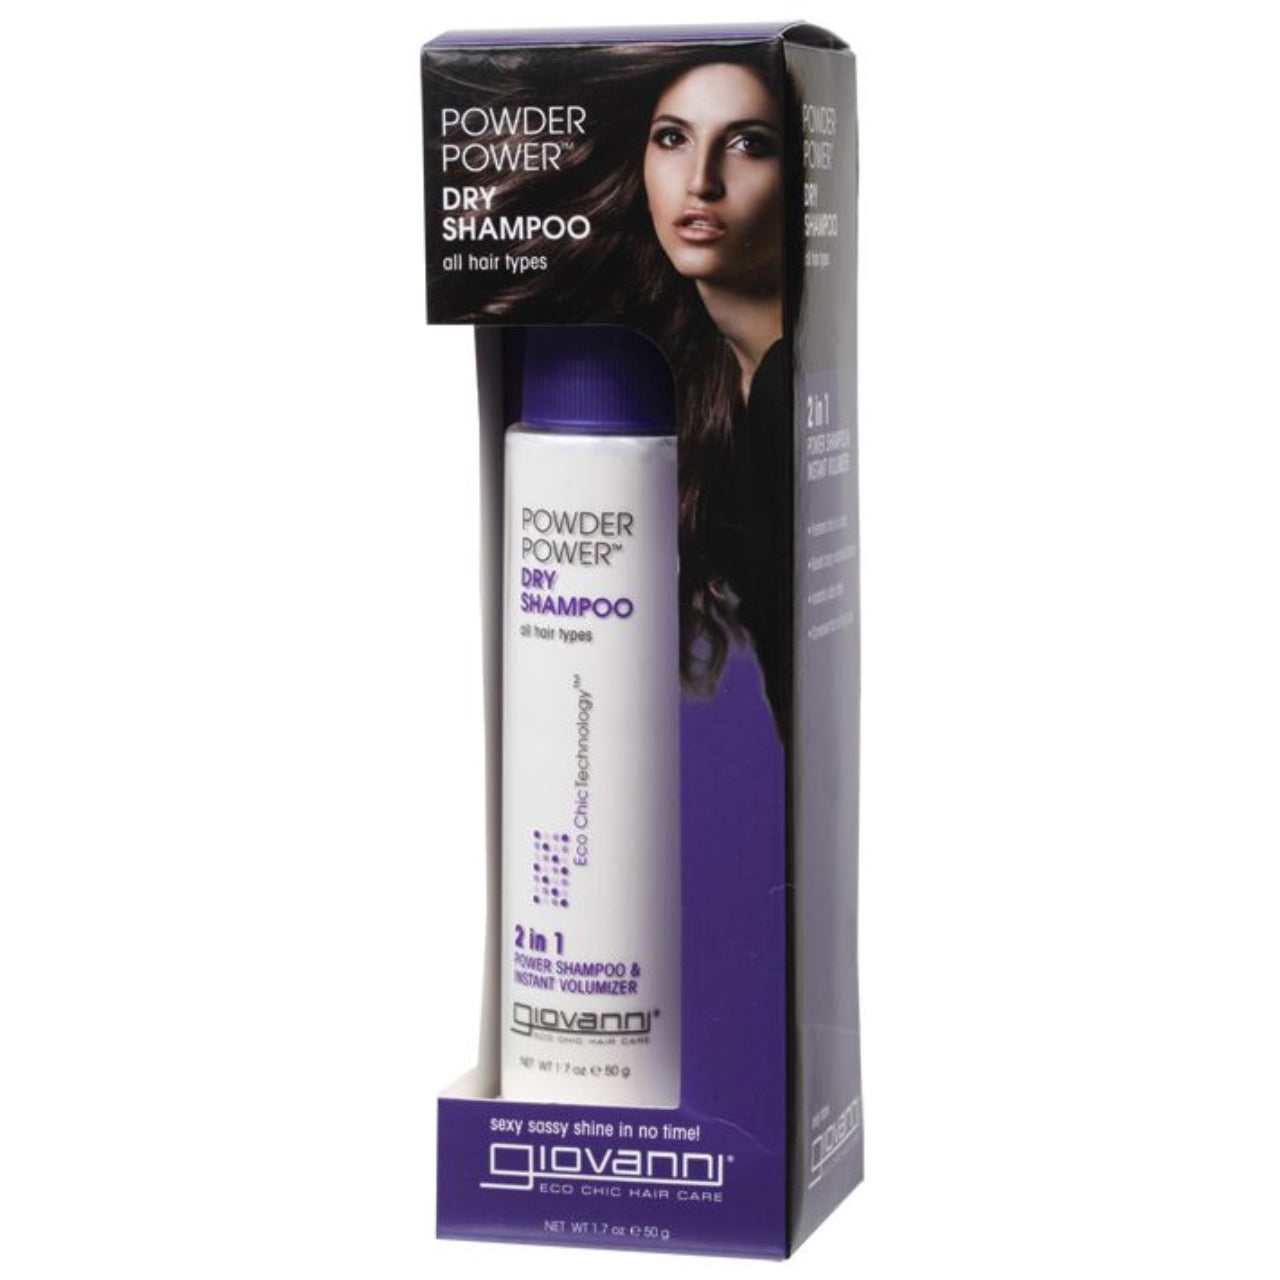 Giovanni Powder Power Dry Shampoo